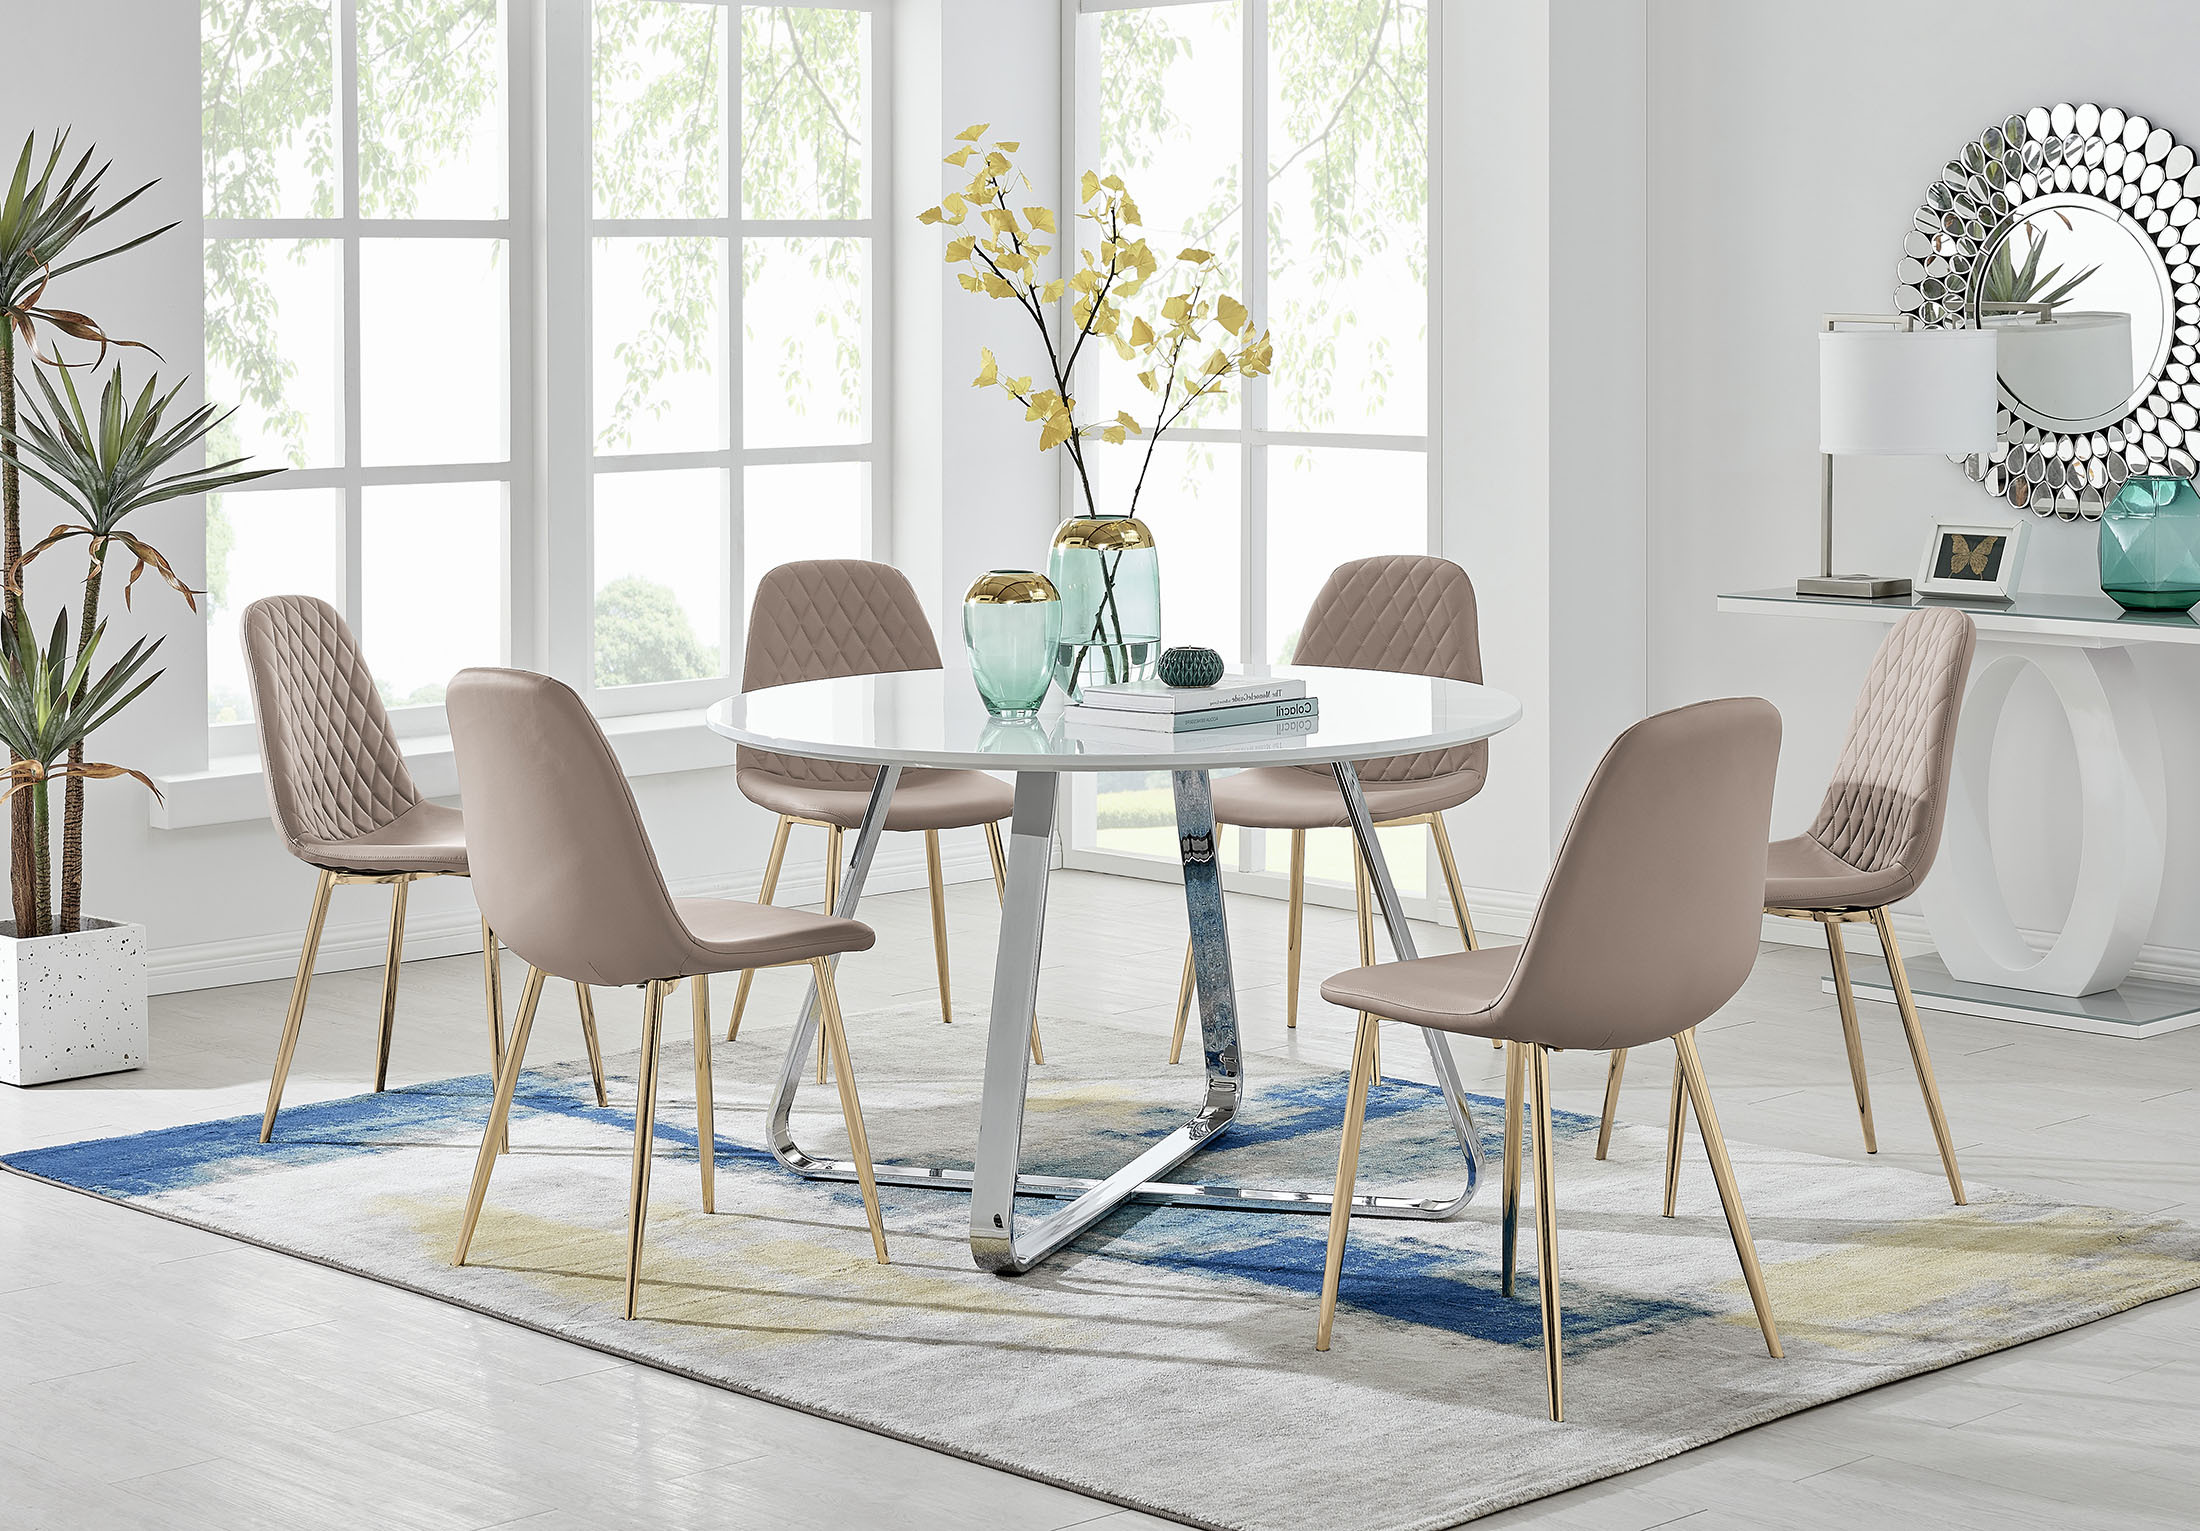 Santorini White Round Dining Table And 9 Corona Gold Leg Chairs